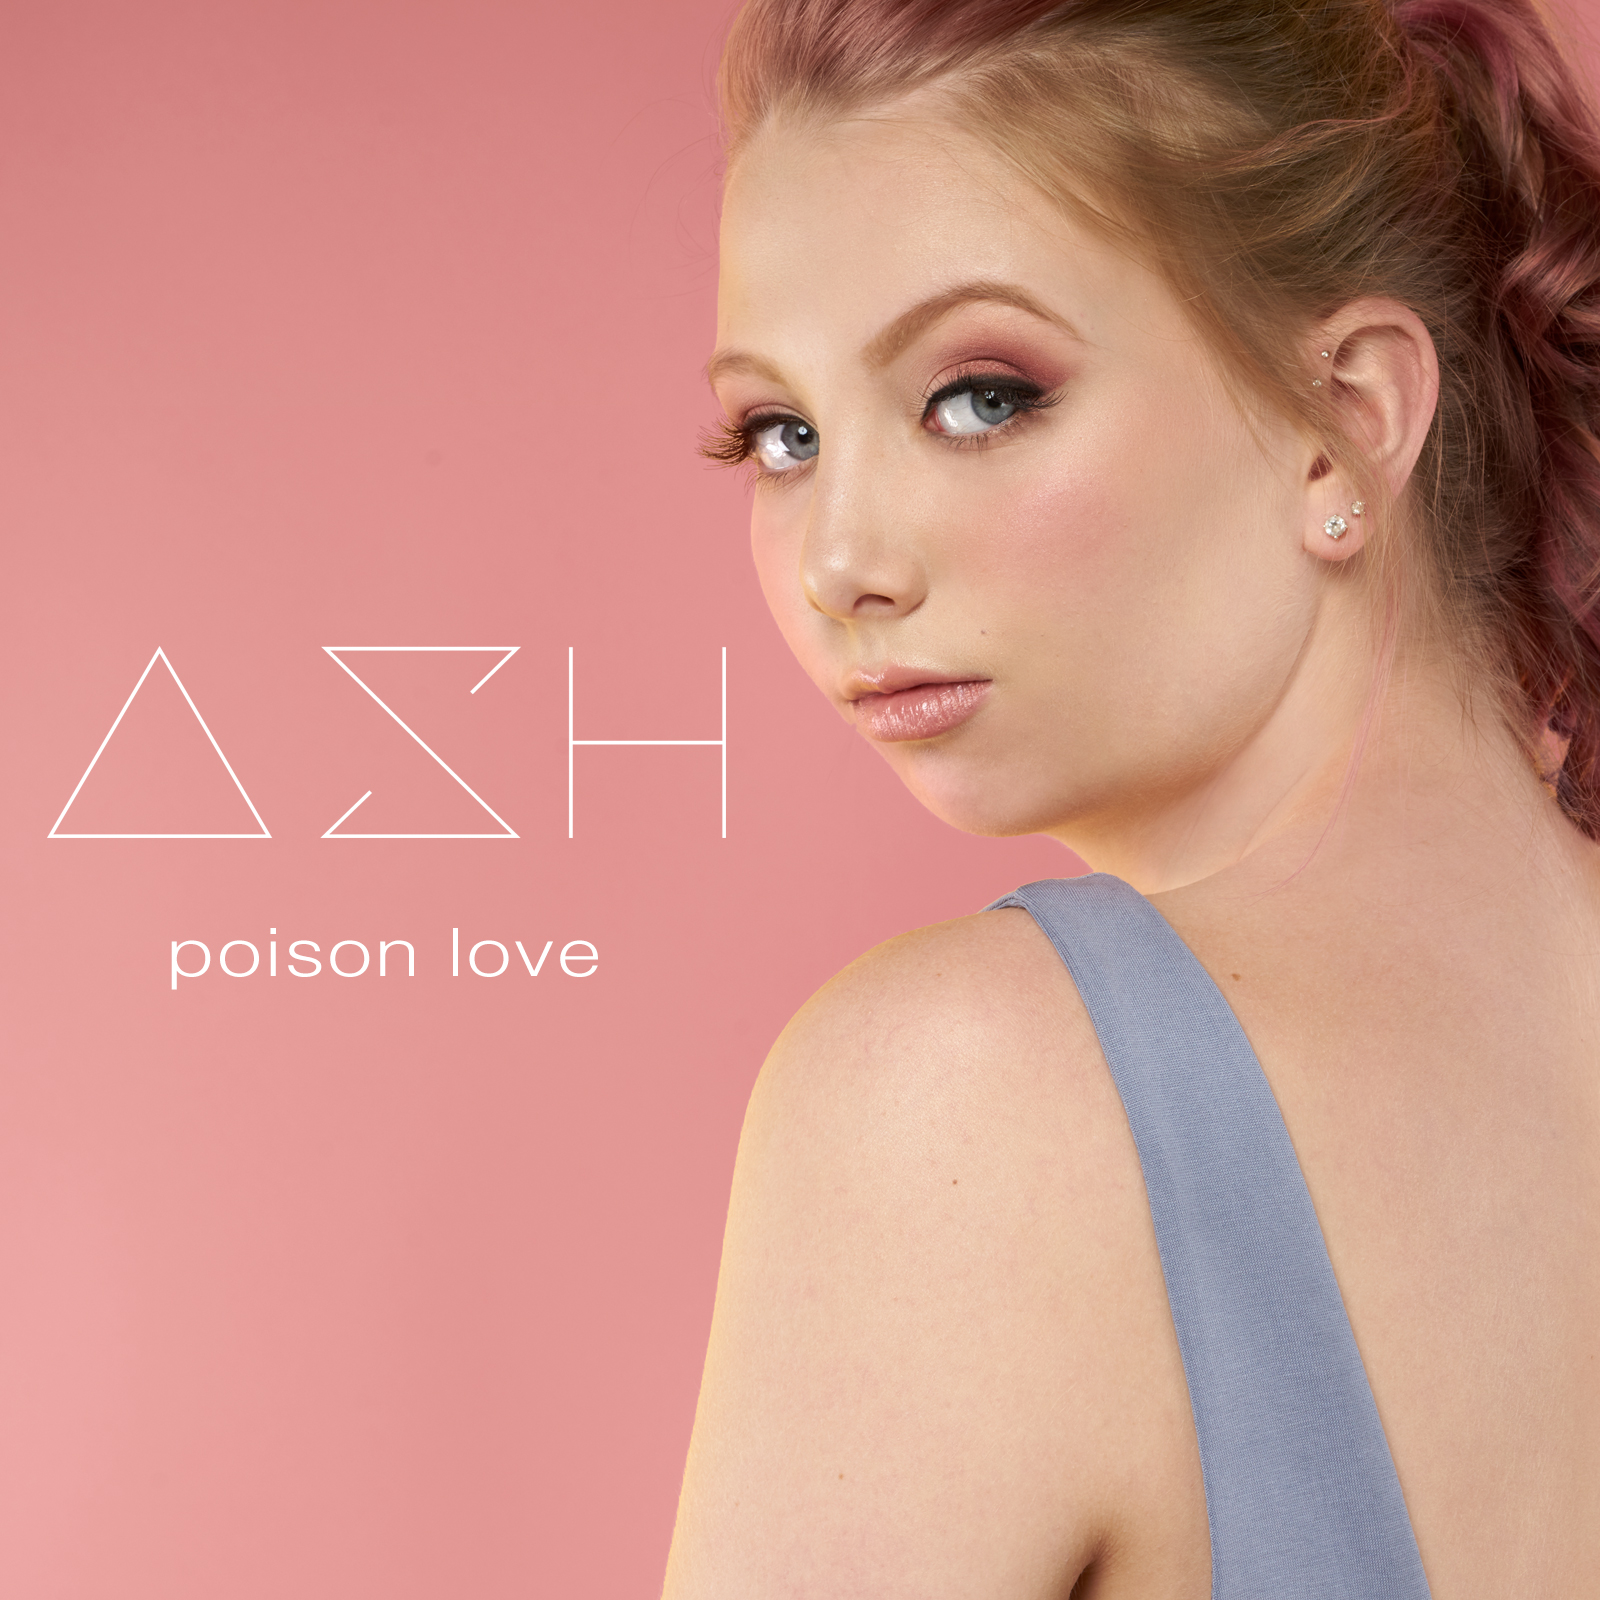 "- Poison LoveReleased 7/16/2018Available for purchase on iTunes and amazon musicOr, stream now on Spotify""She's ahead of the curve against her contemporary counterparts when it comes to producing soul-driven Pop music.....there's no fragility to her vocal range, just depth, empowerment and scorned passion.""~Amelia, A&R Factory"